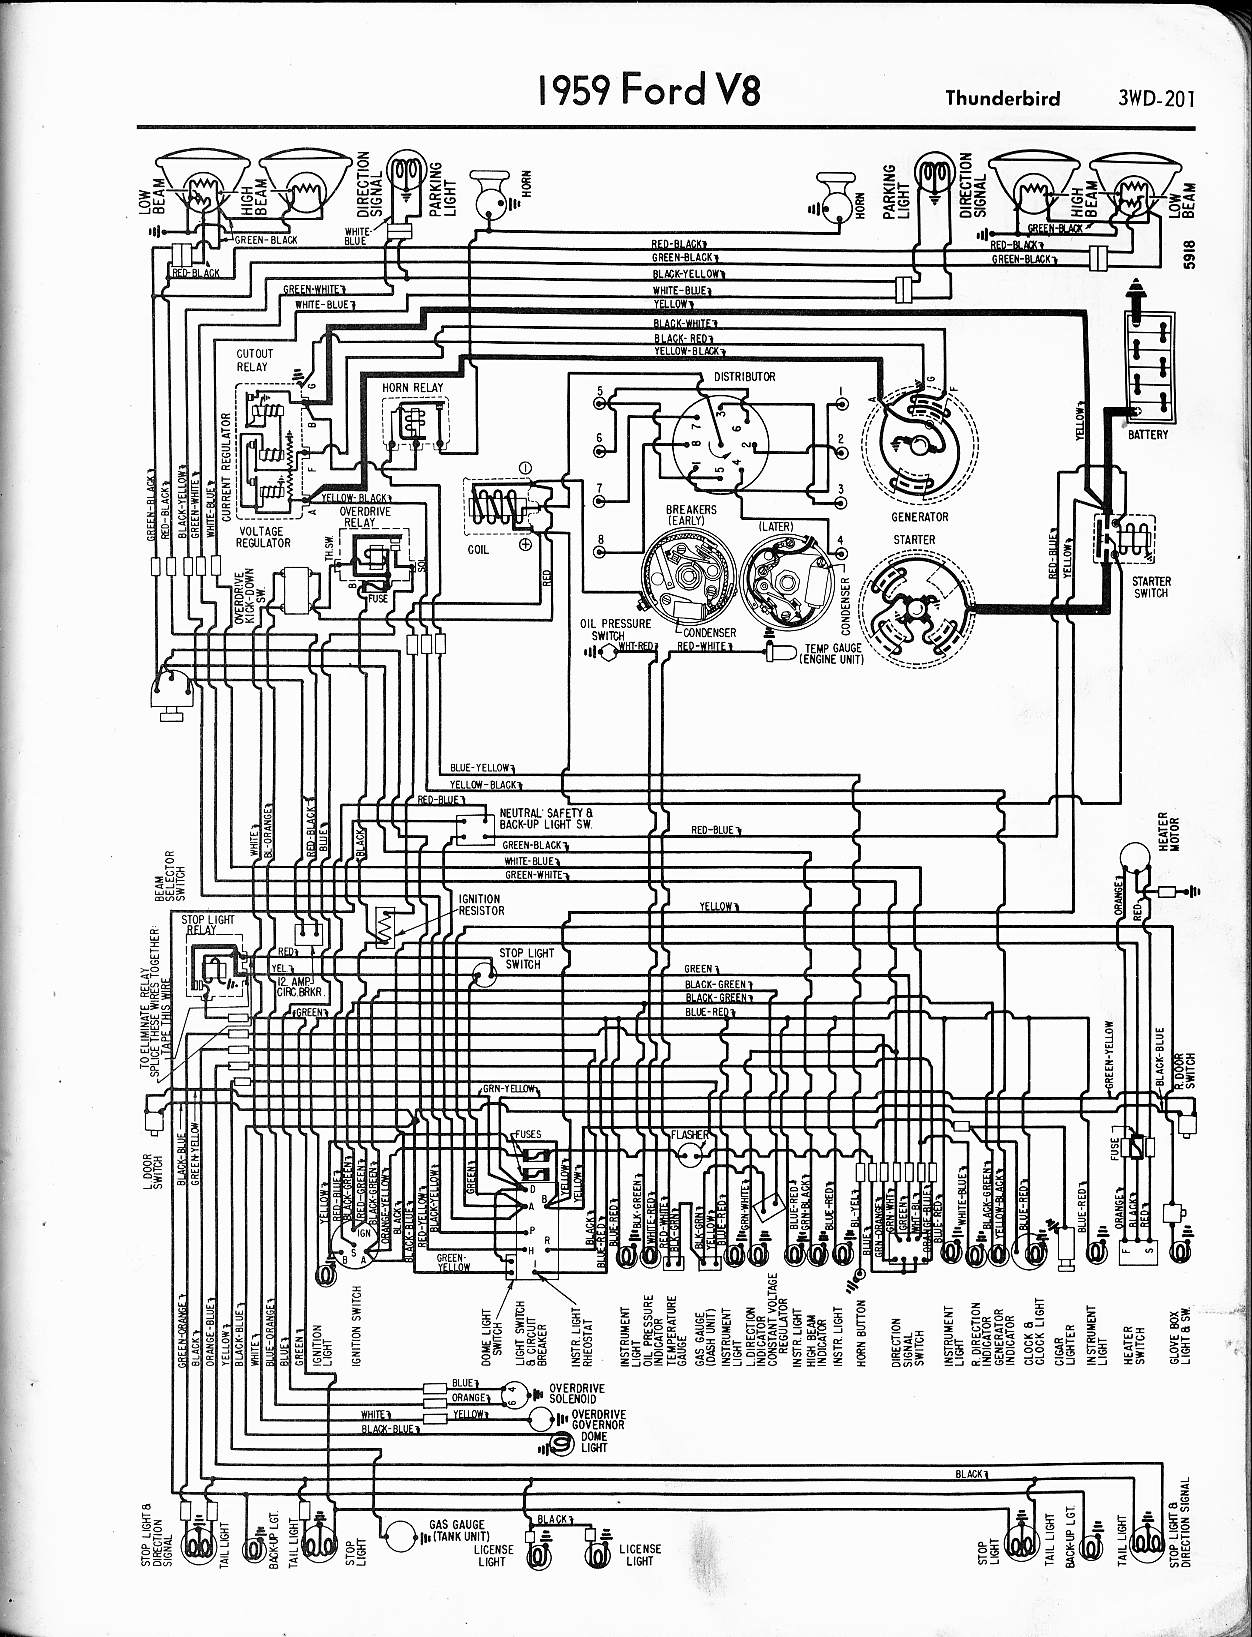 Phenomenal 57 65 Ford Wiring Diagrams Wiring Digital Resources Remcakbiperorg